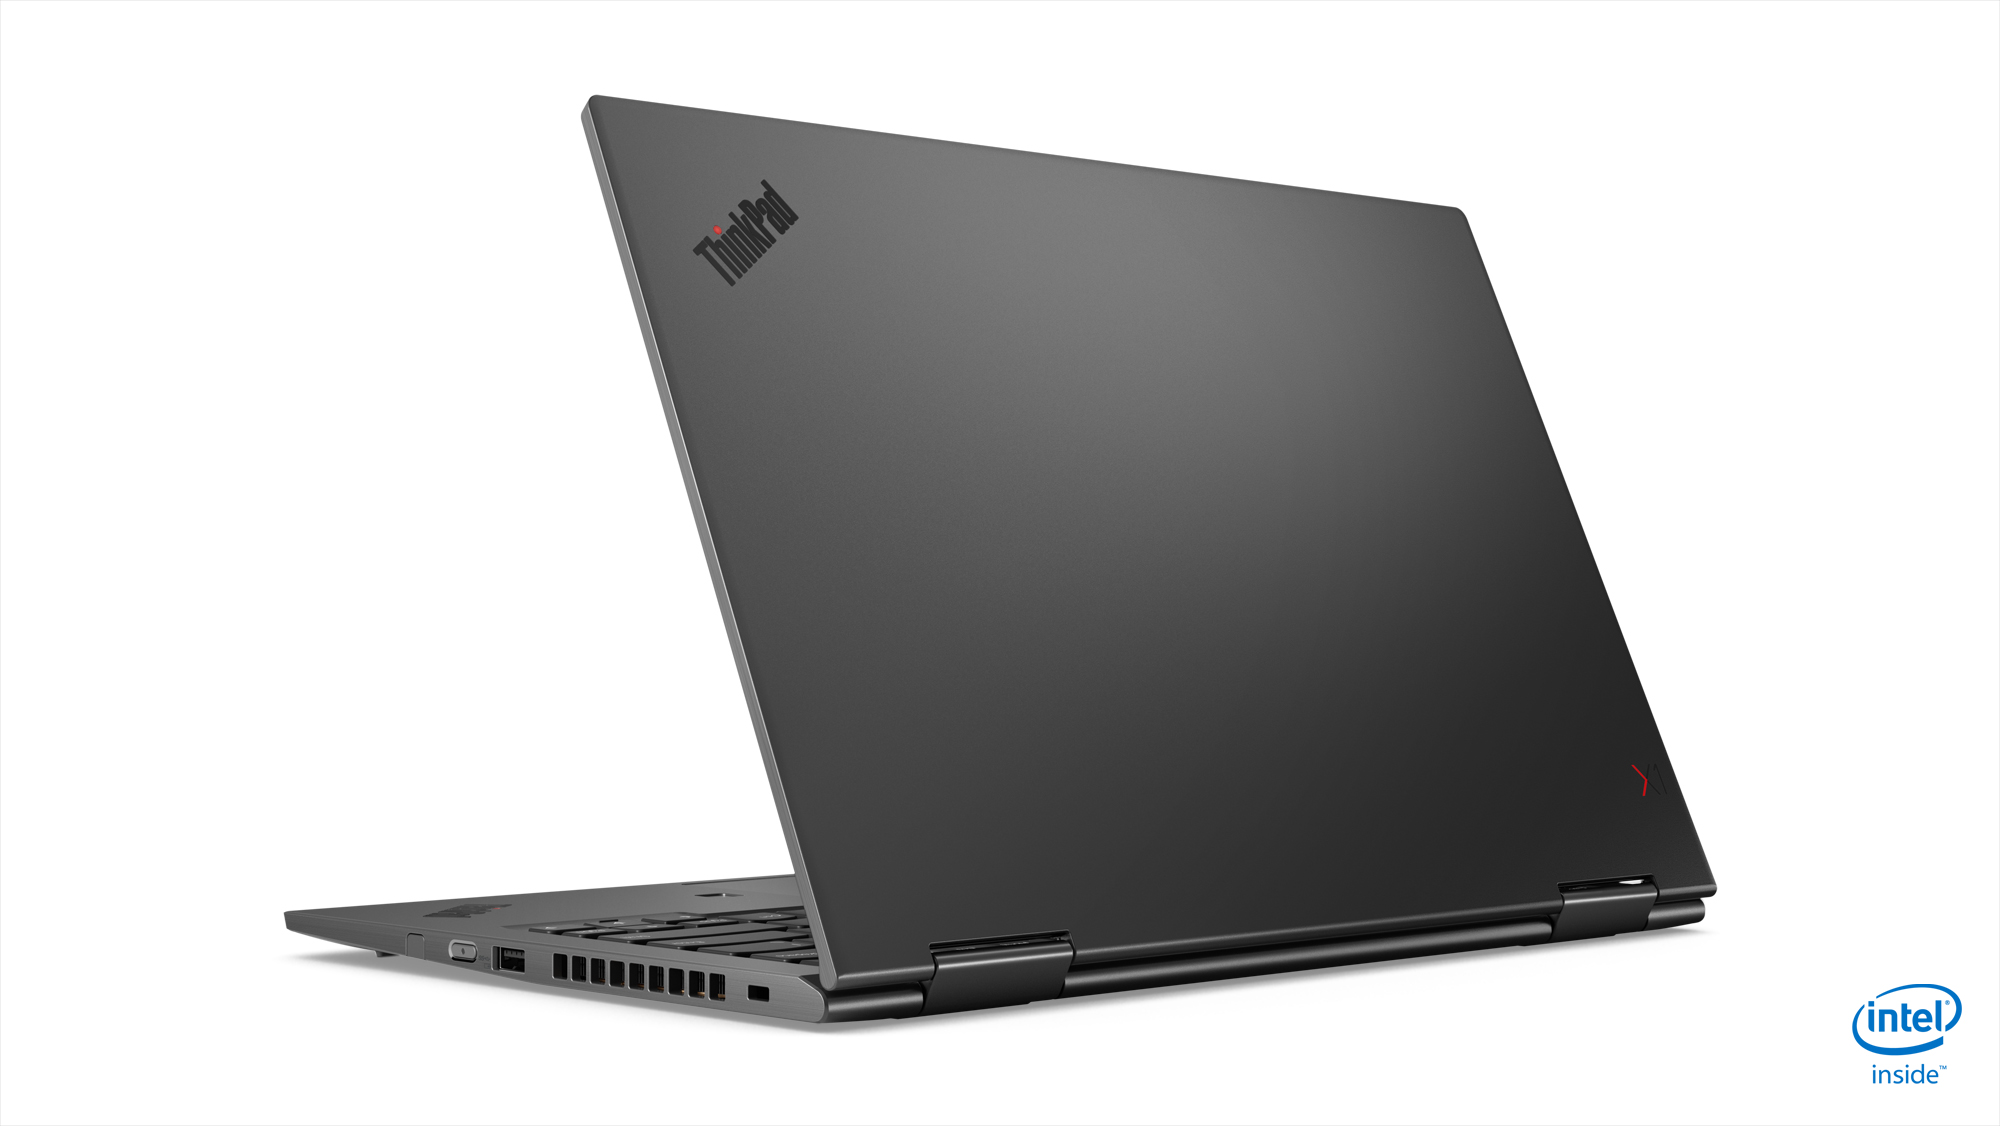 Lenovo ThinkPad X1 Carbon and Yoga get new designs for 2019 - The Verge